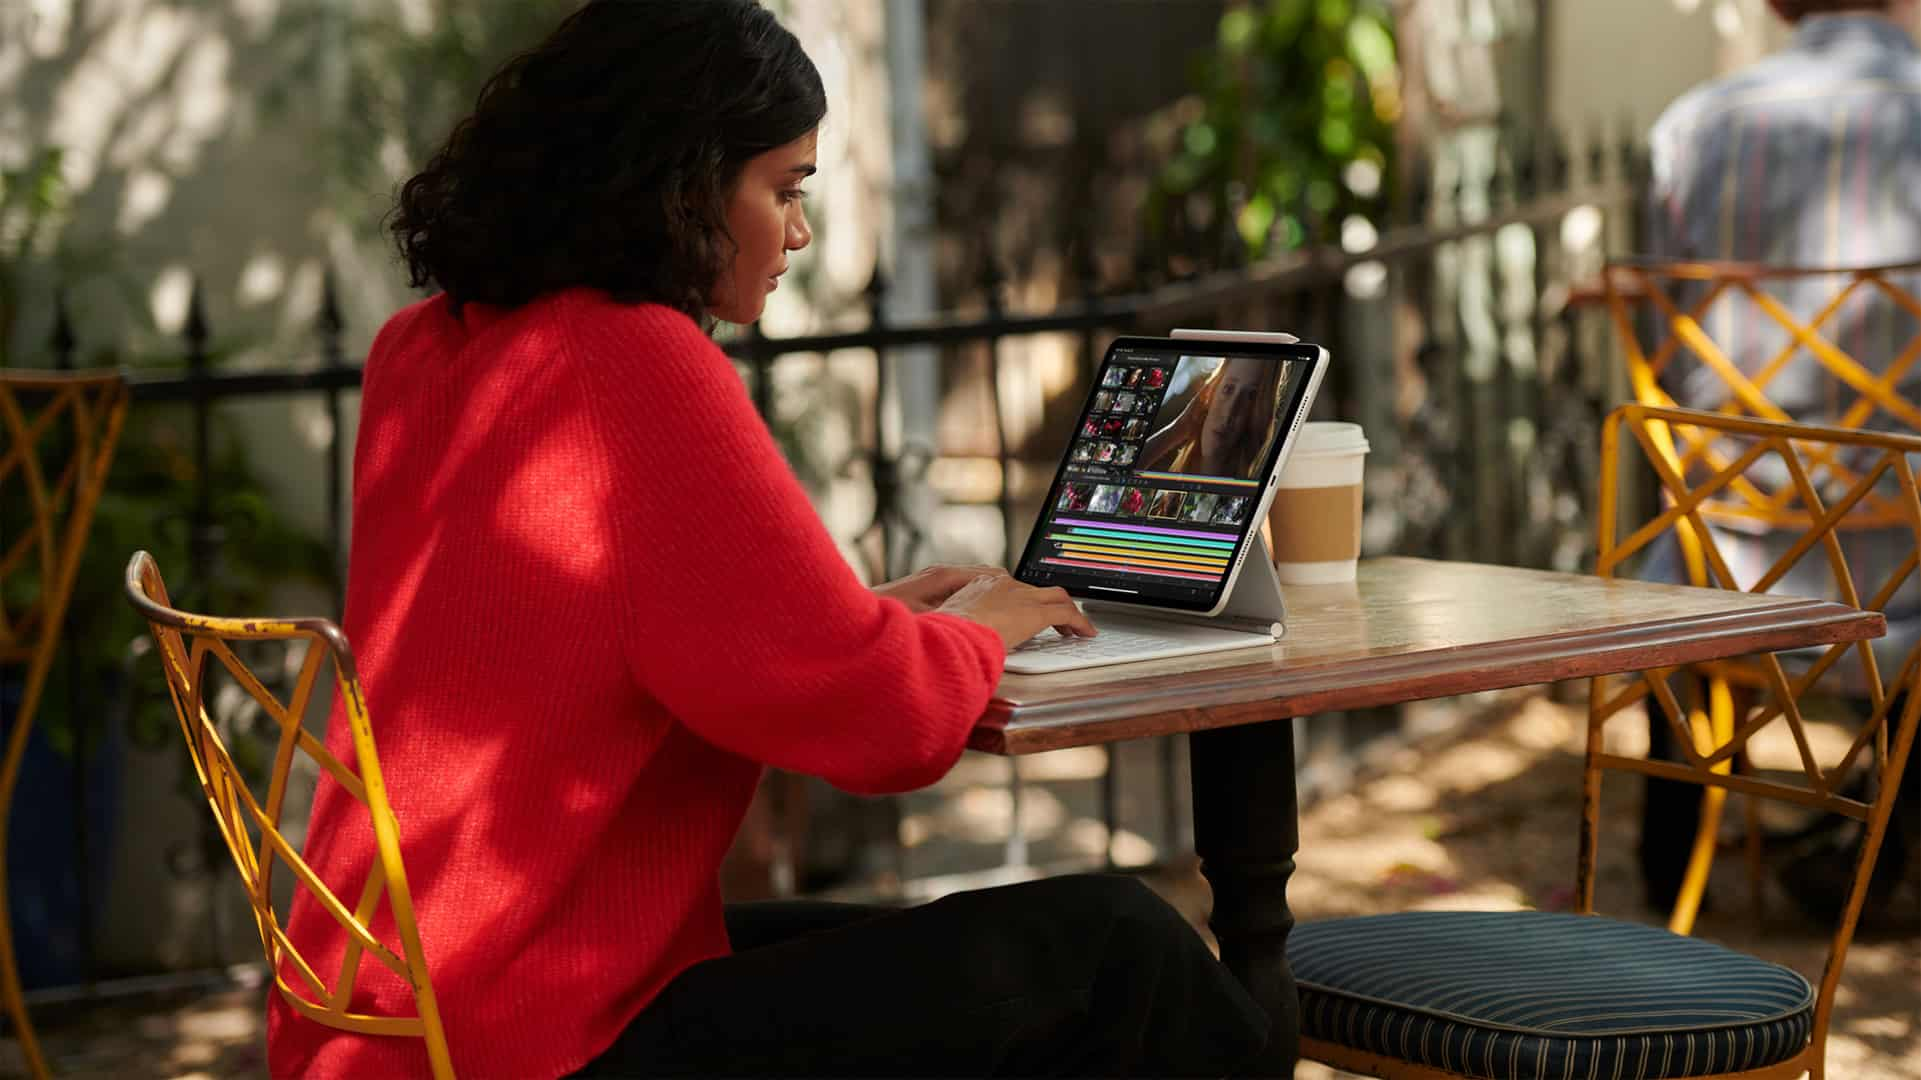 The new iPad Pros are total overkill, and that's great!